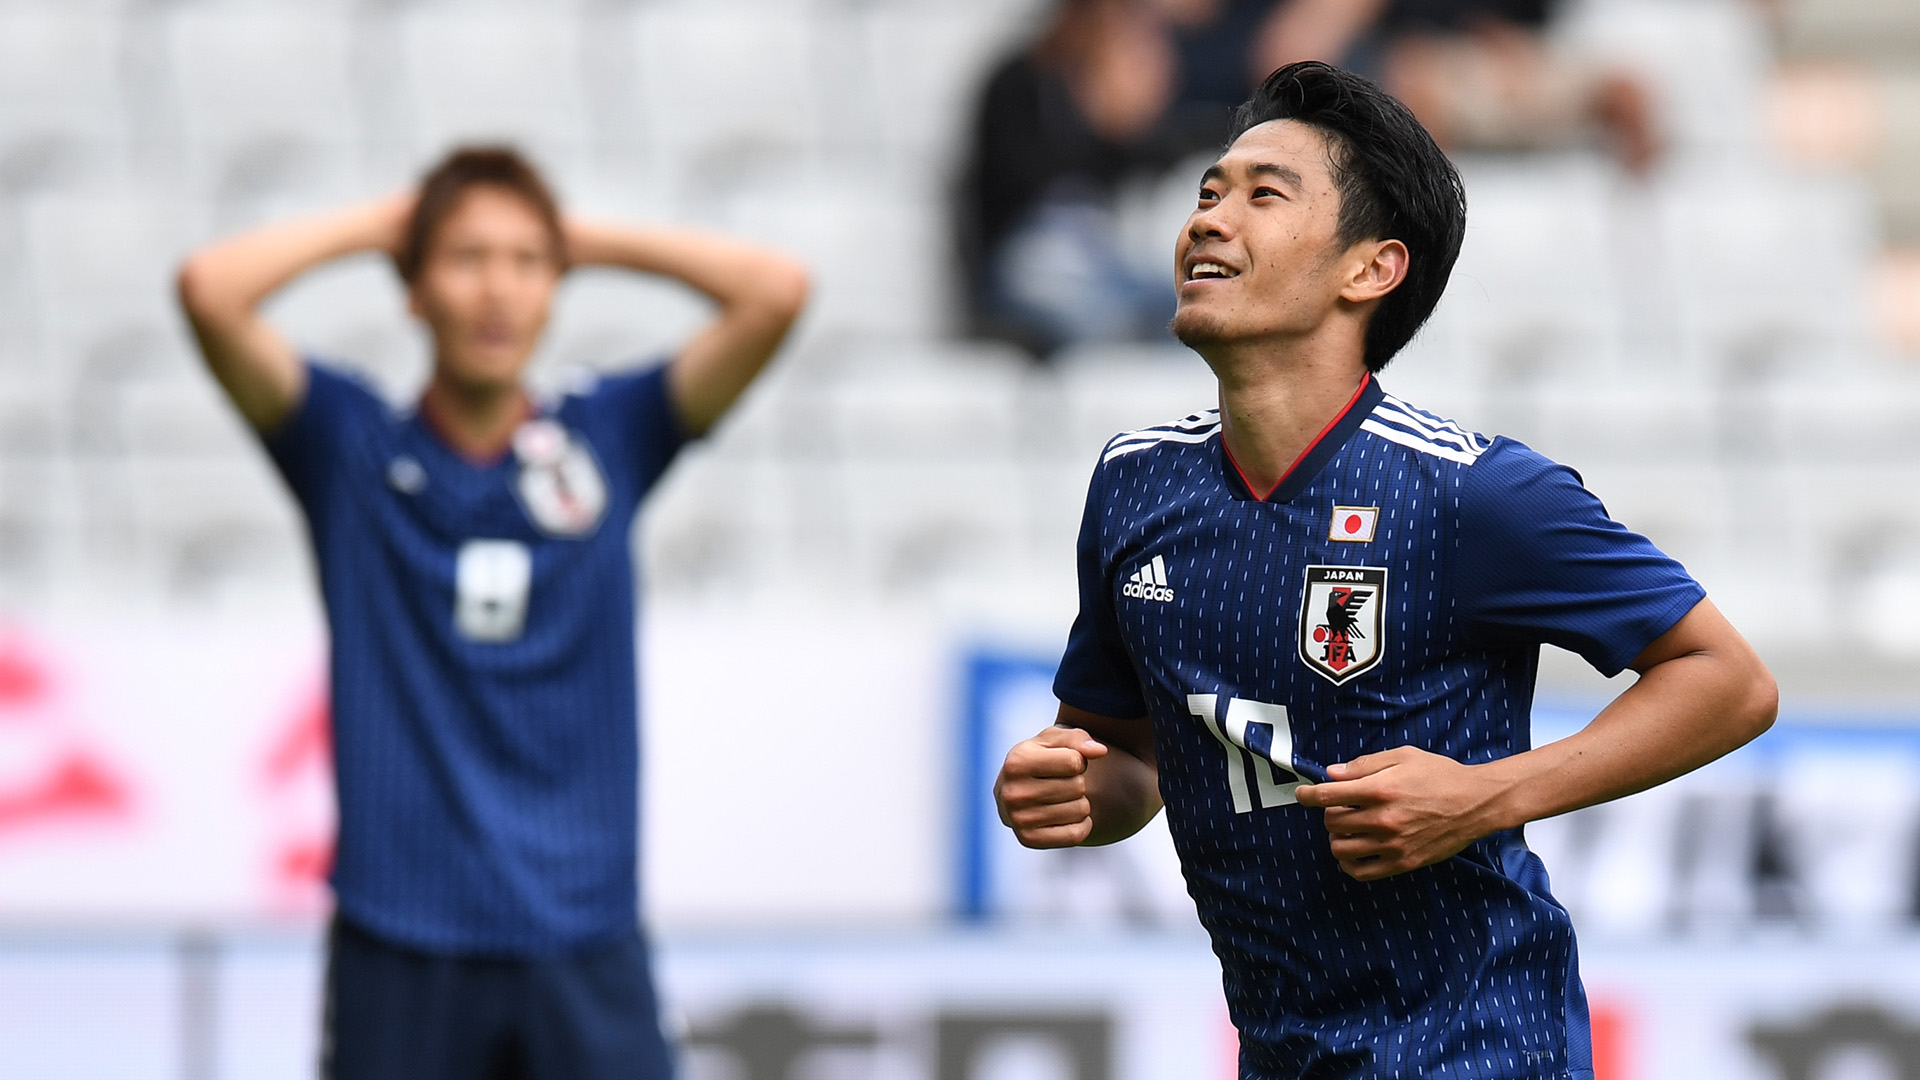 Japan defeat 10-man Colombia 2-1 in another upset